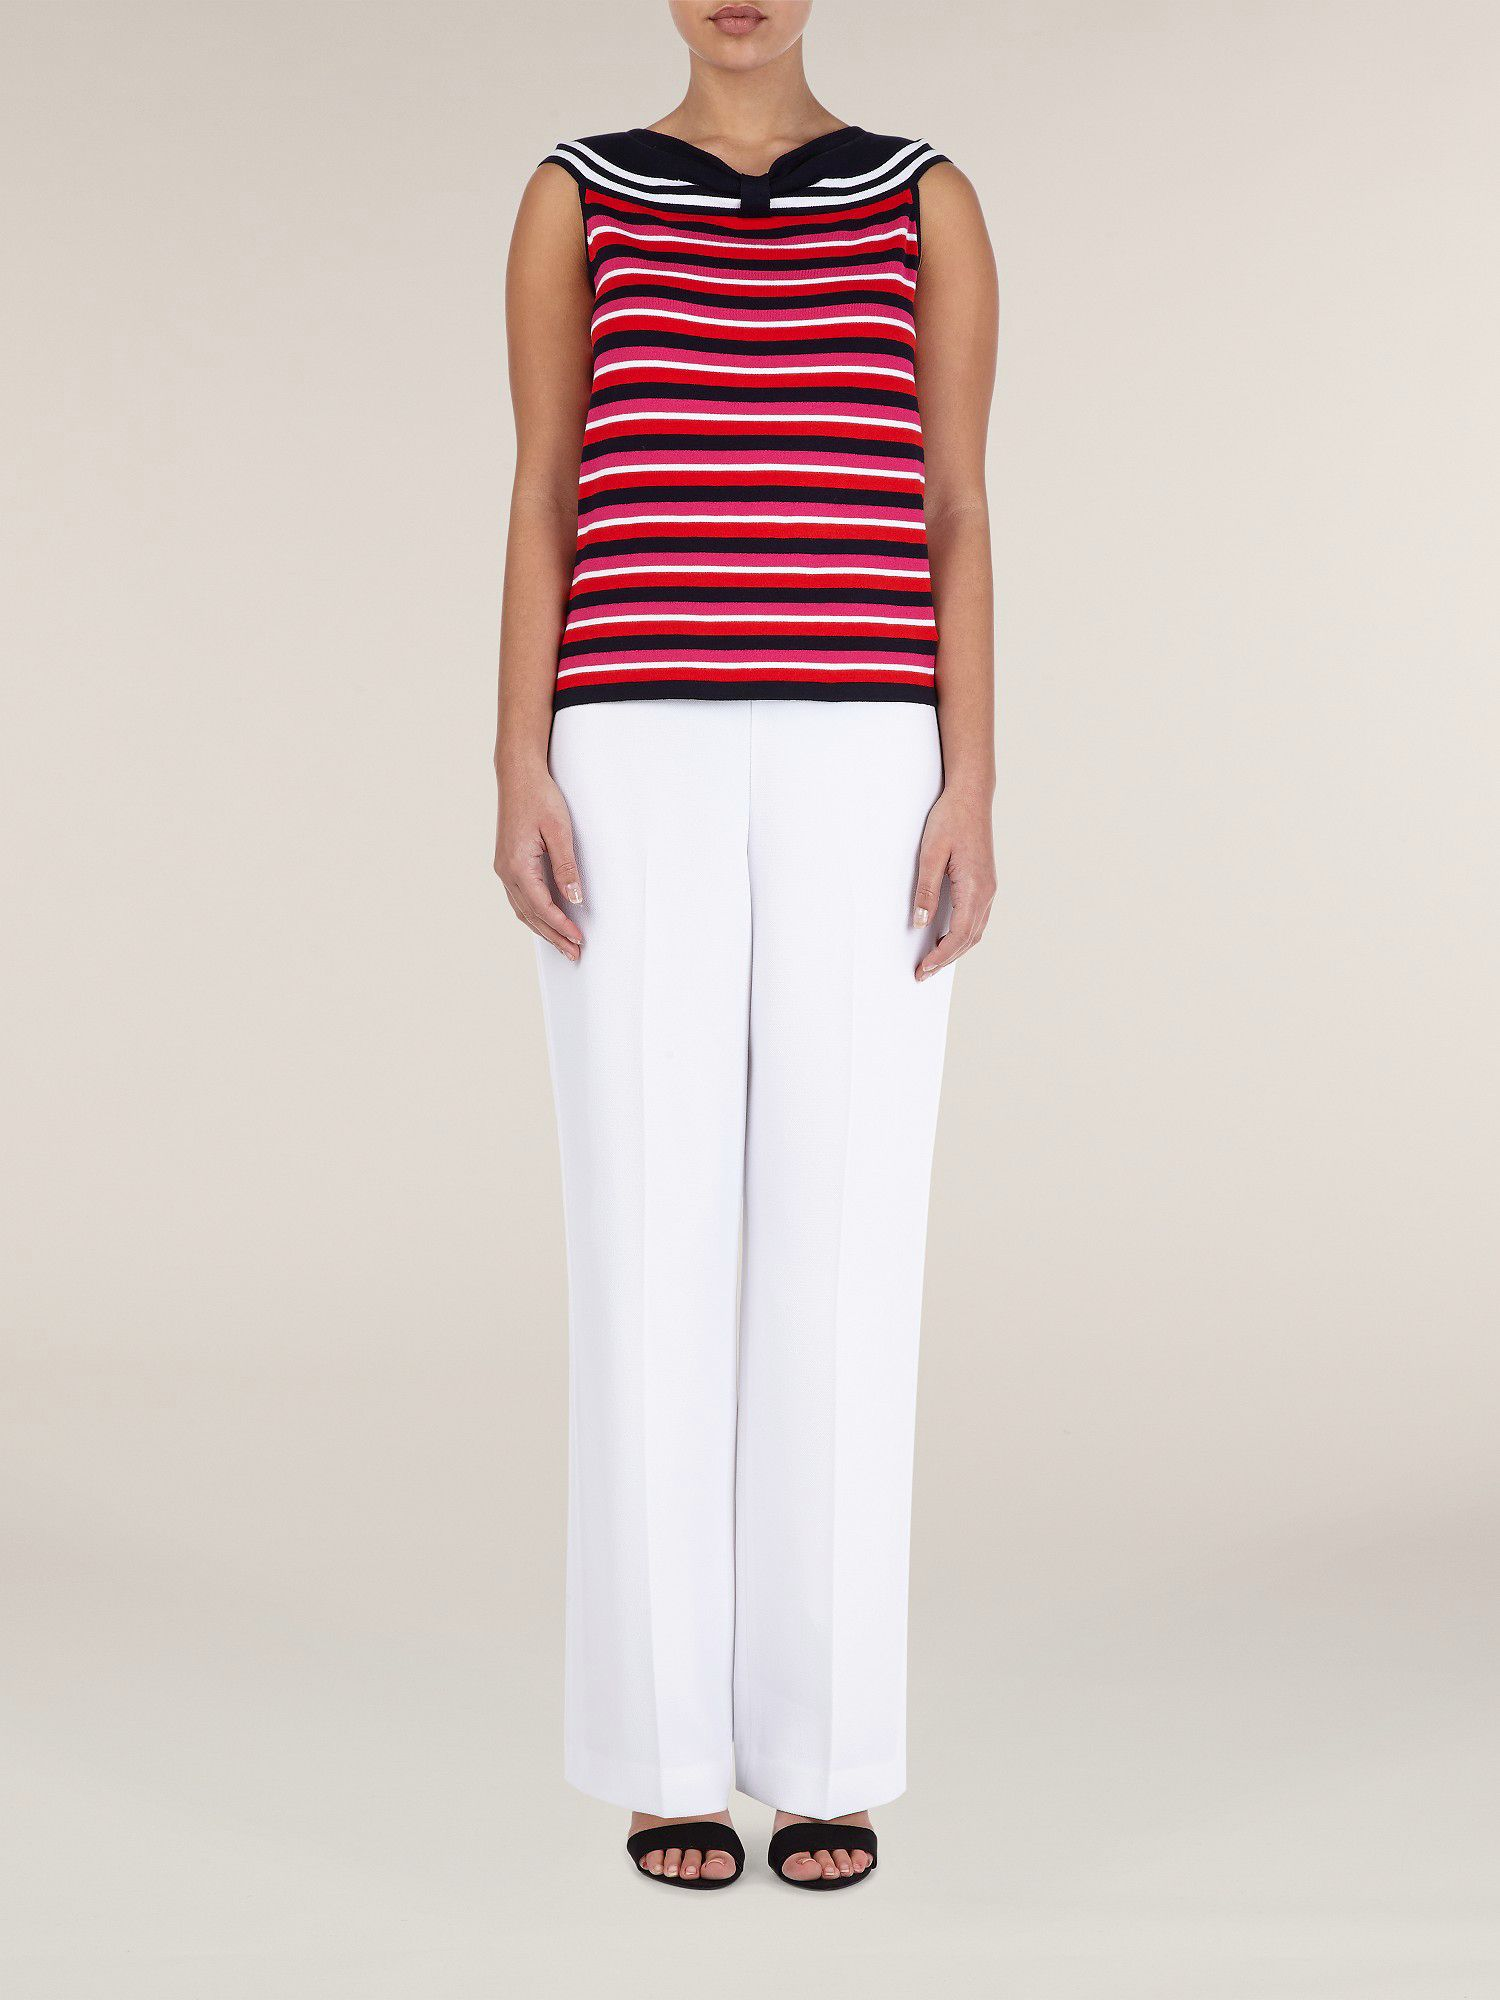 Bardot stripe top